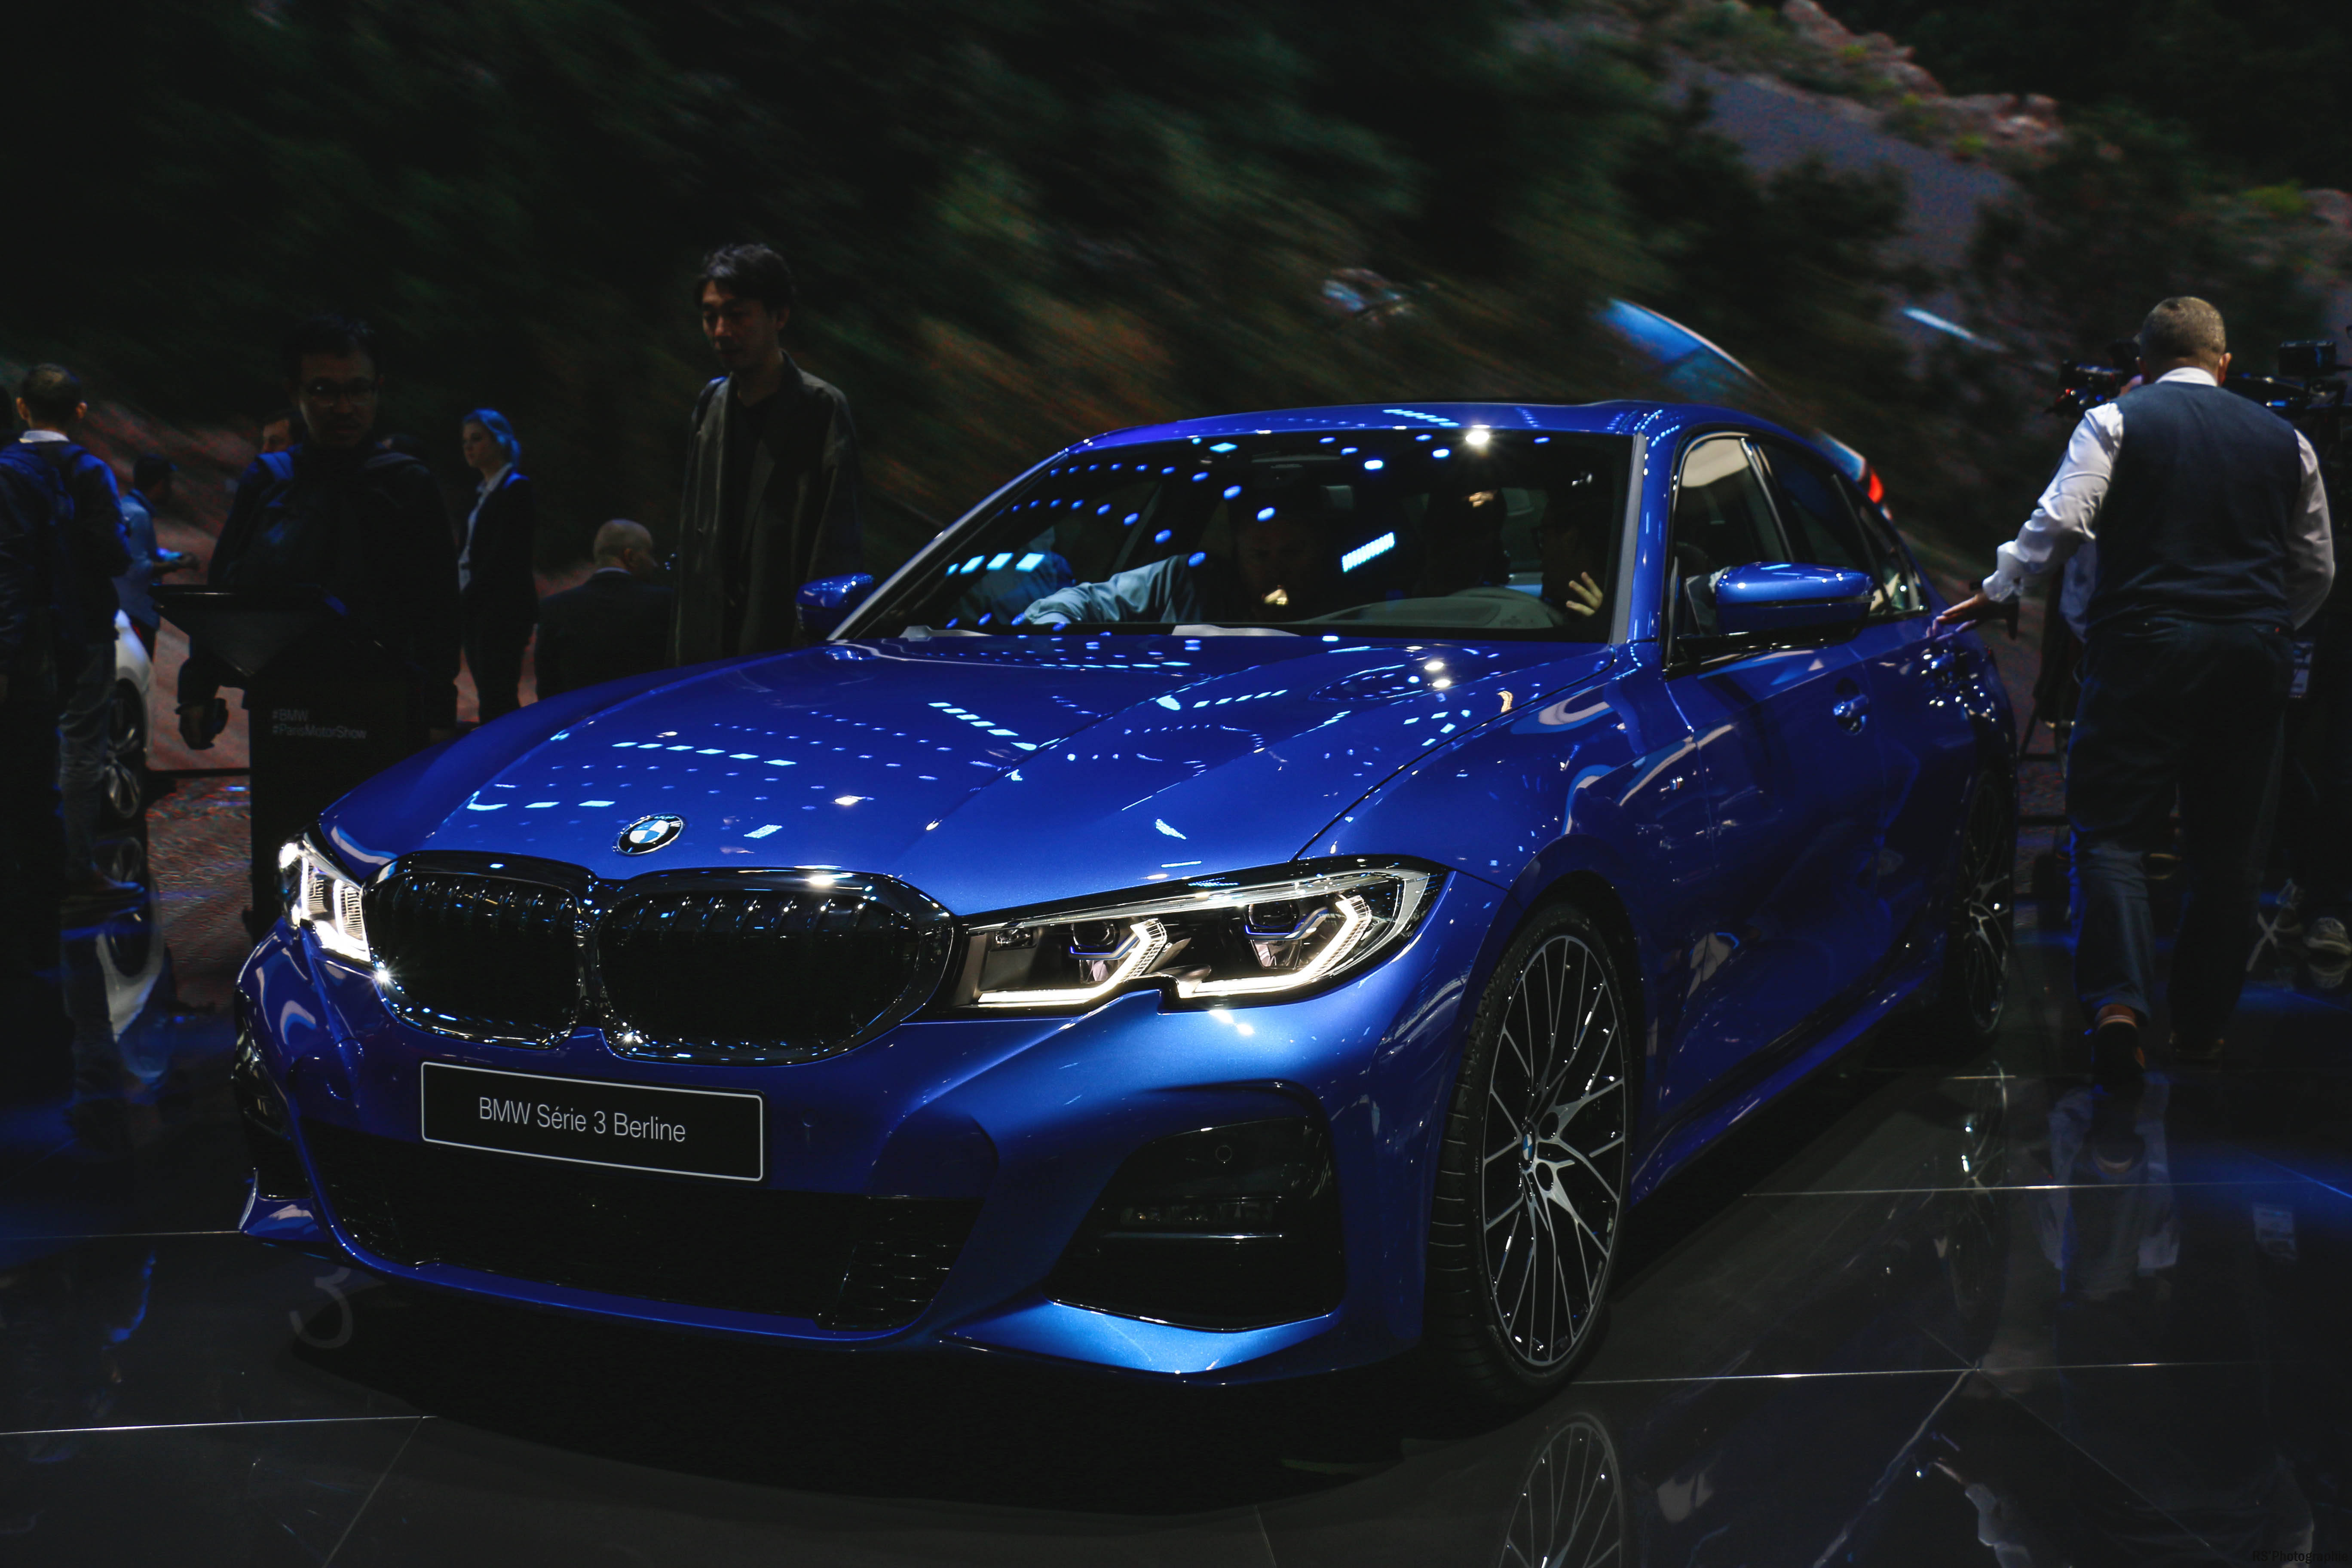 BMW Serie3 Berline - Paris Motor Show - 2018 - Mondial Auto - photo by Arnaud Demasier RS Photographie